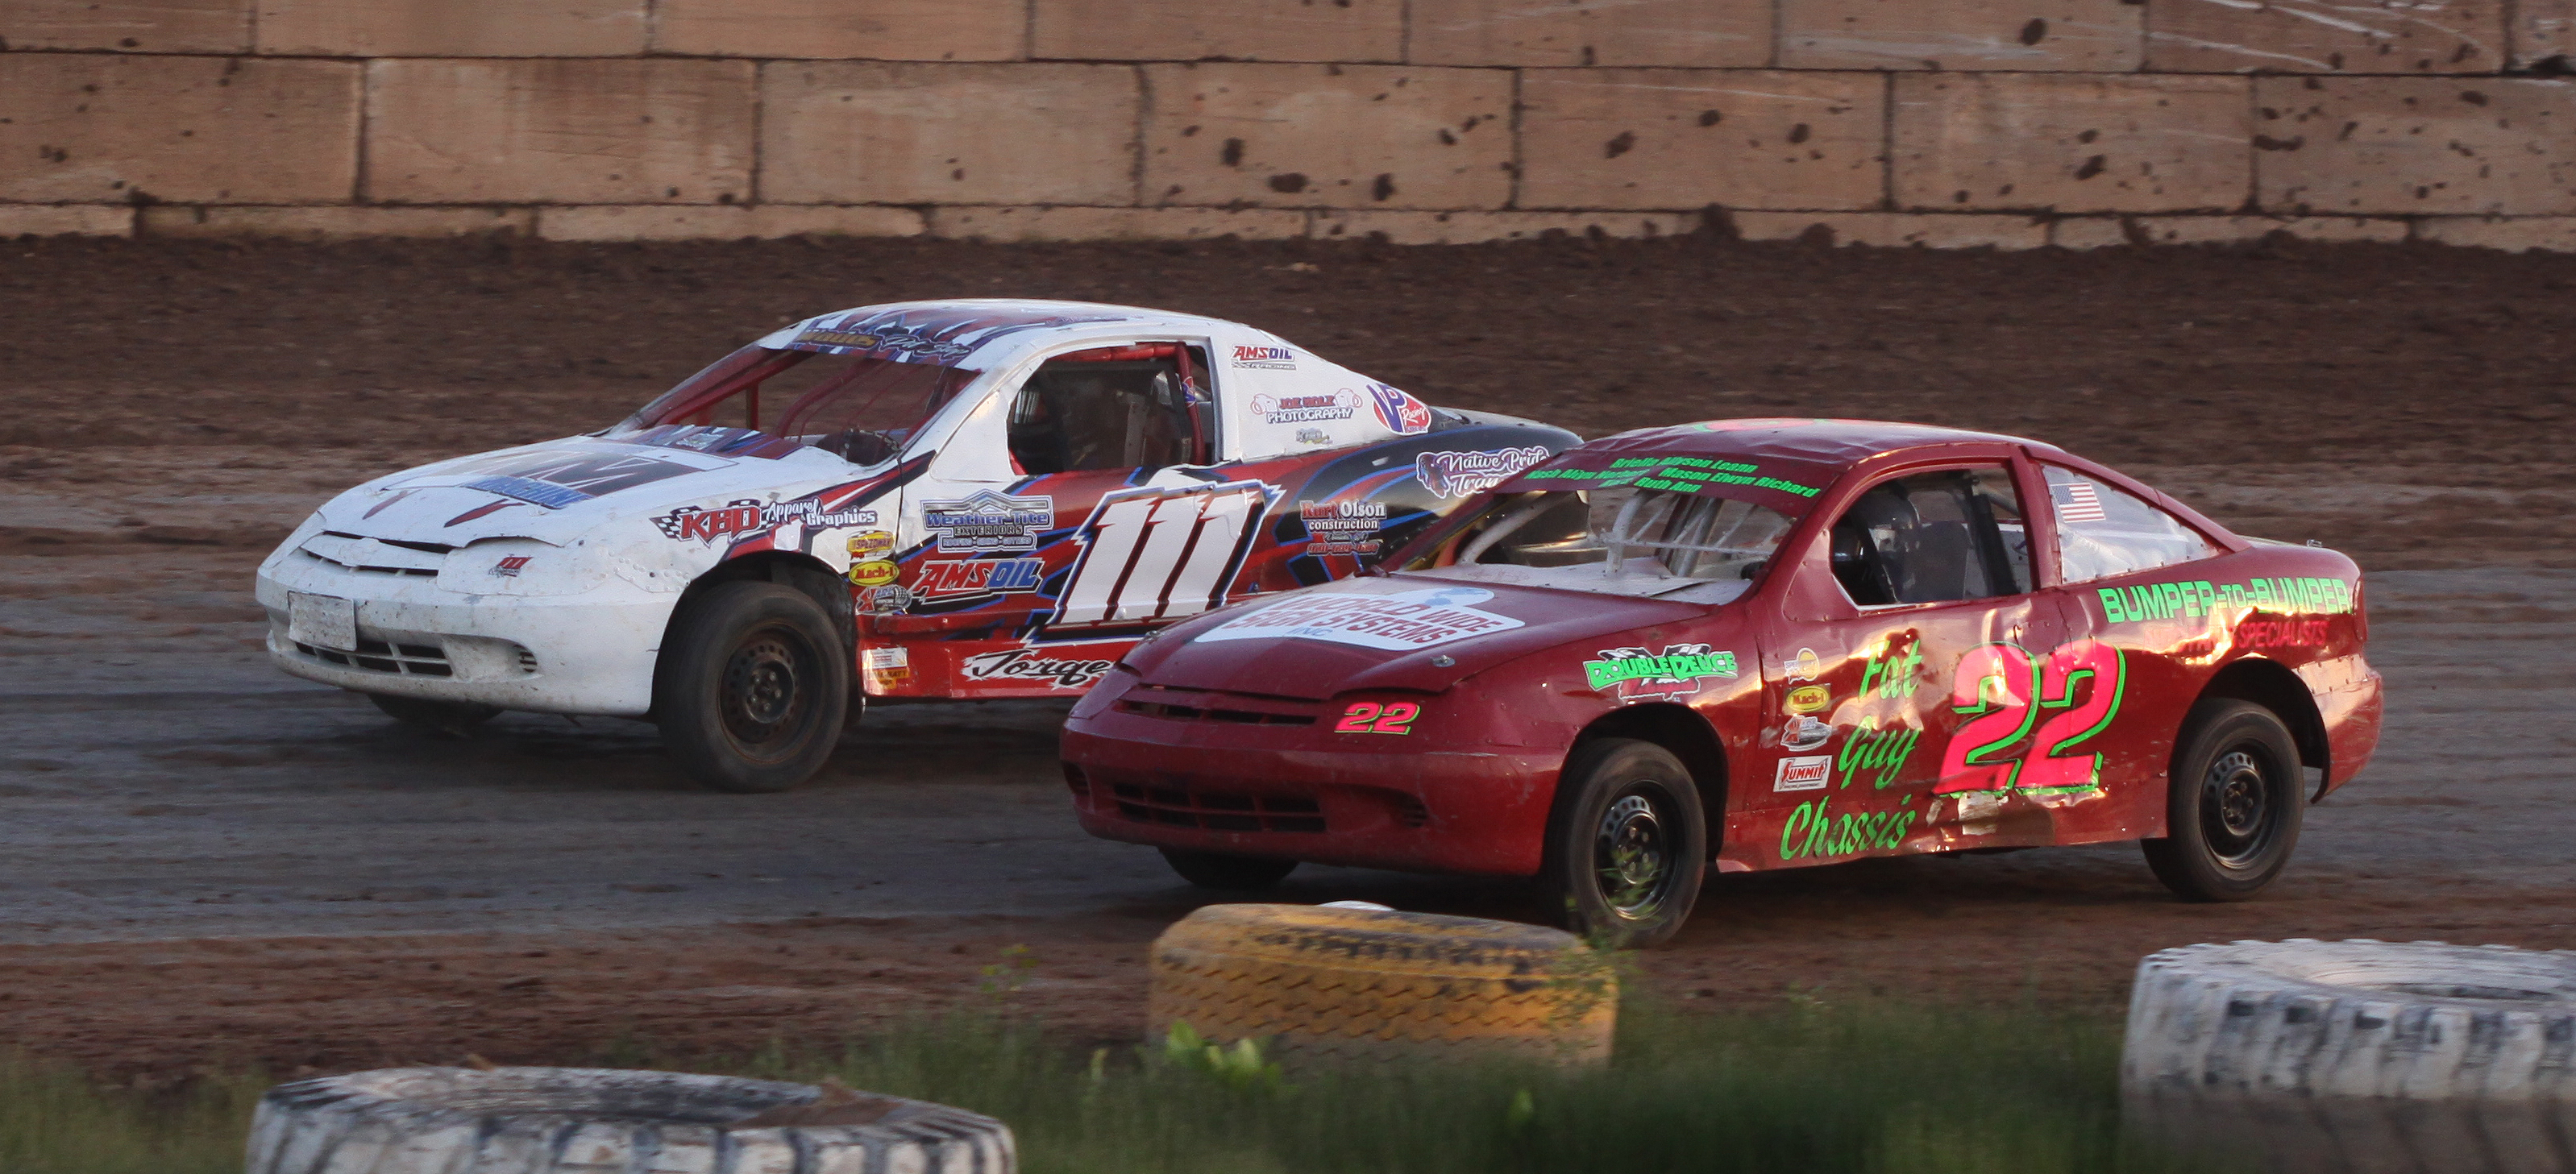 Kyle Jorgenson (111) and Clint Malueg (22) race side by side during a Mighty 4 heat race during the Shawano Speedway&#039;s season opener on Saturday.<br />Morgan Rode | NEW Media